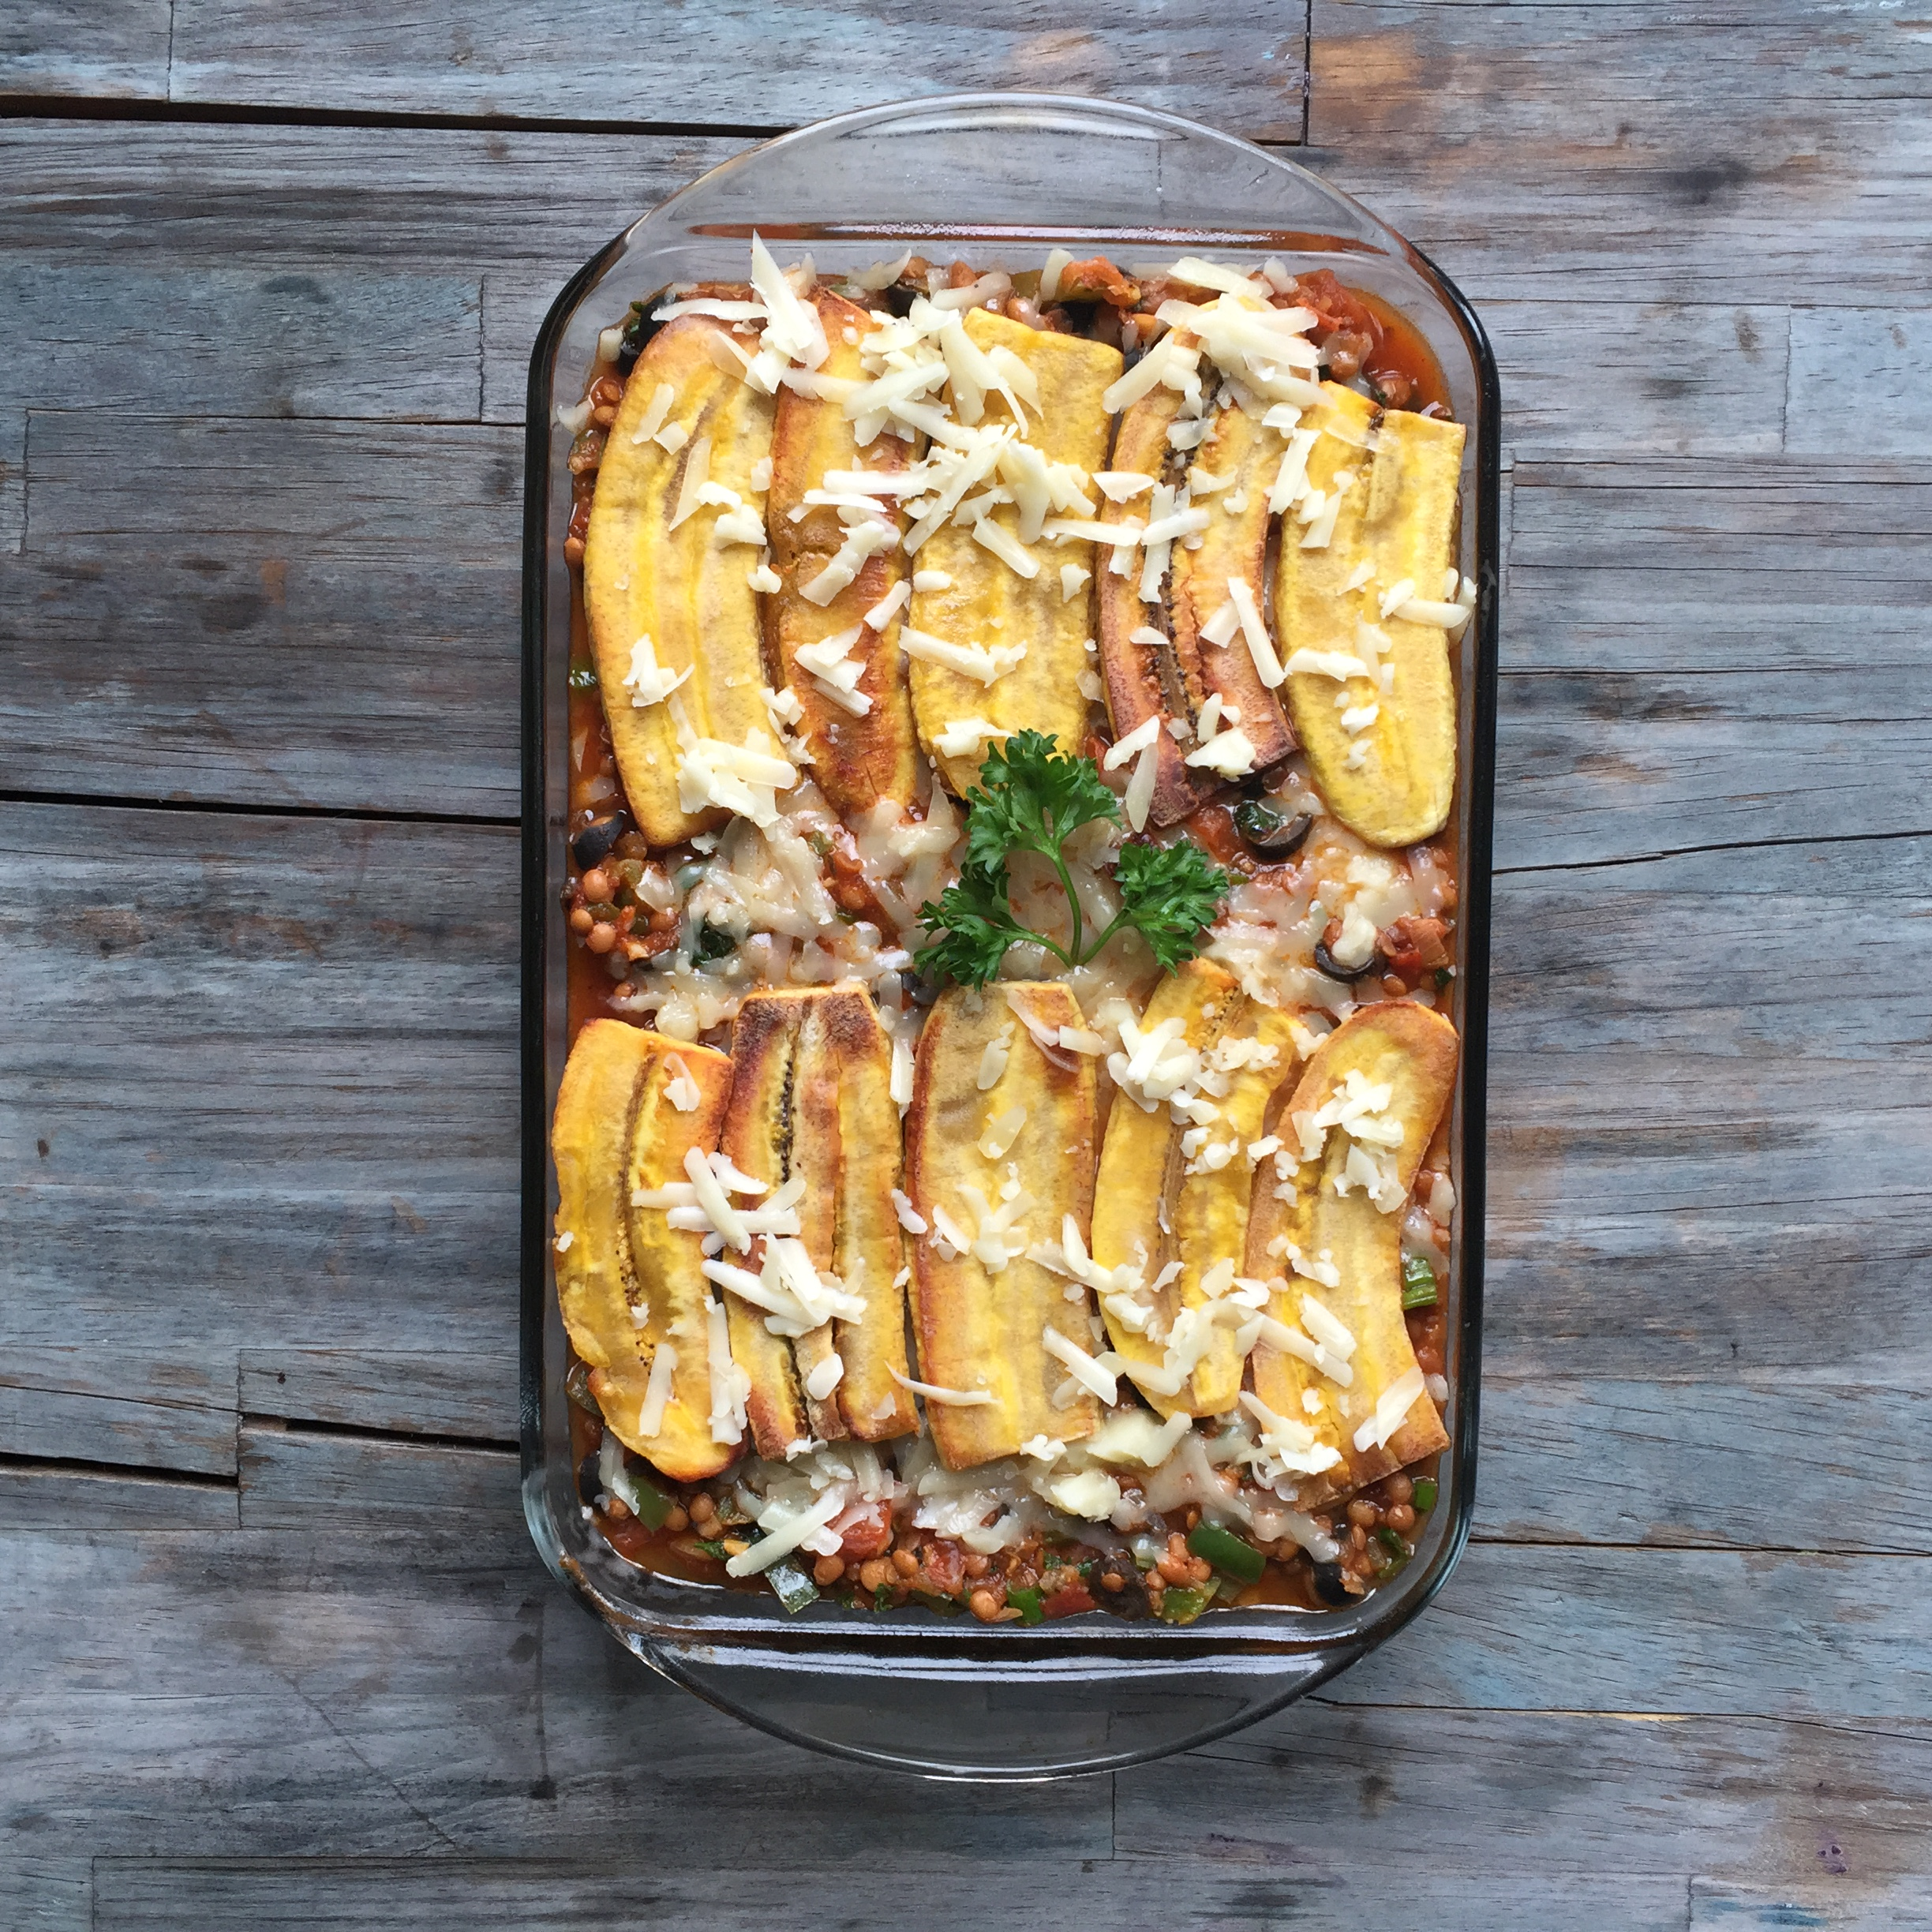 Jamaican-style 'Jerk' Plantain Lasagna with Bone Broth recipe made with bone broth created by Bone Brewhouse.